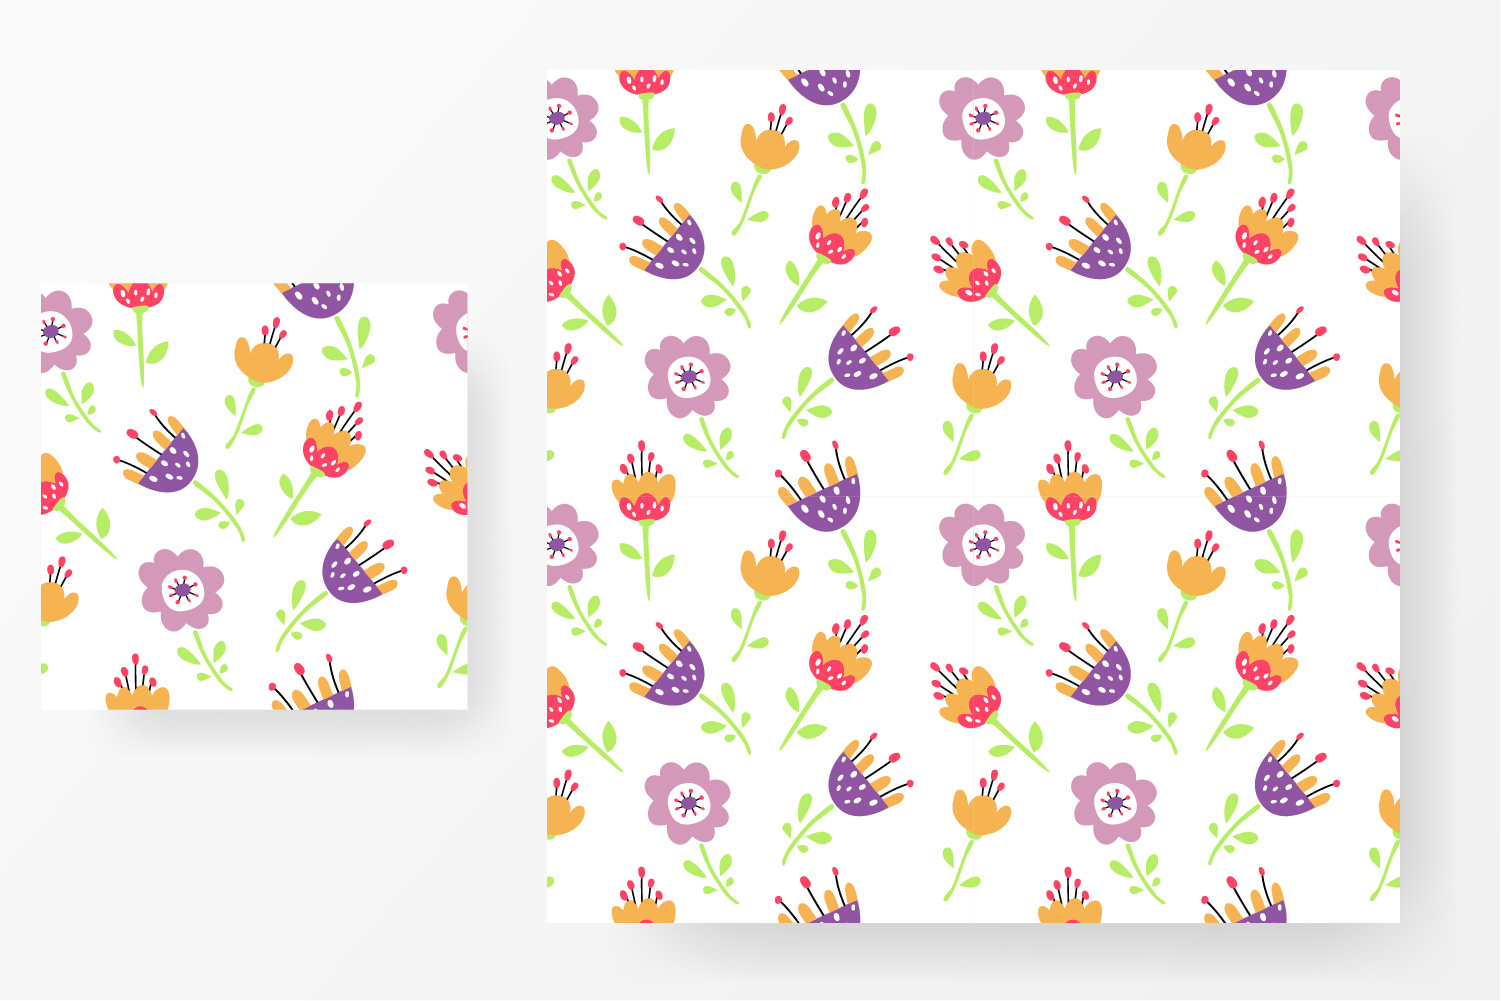 Flower design collection svg example image 5